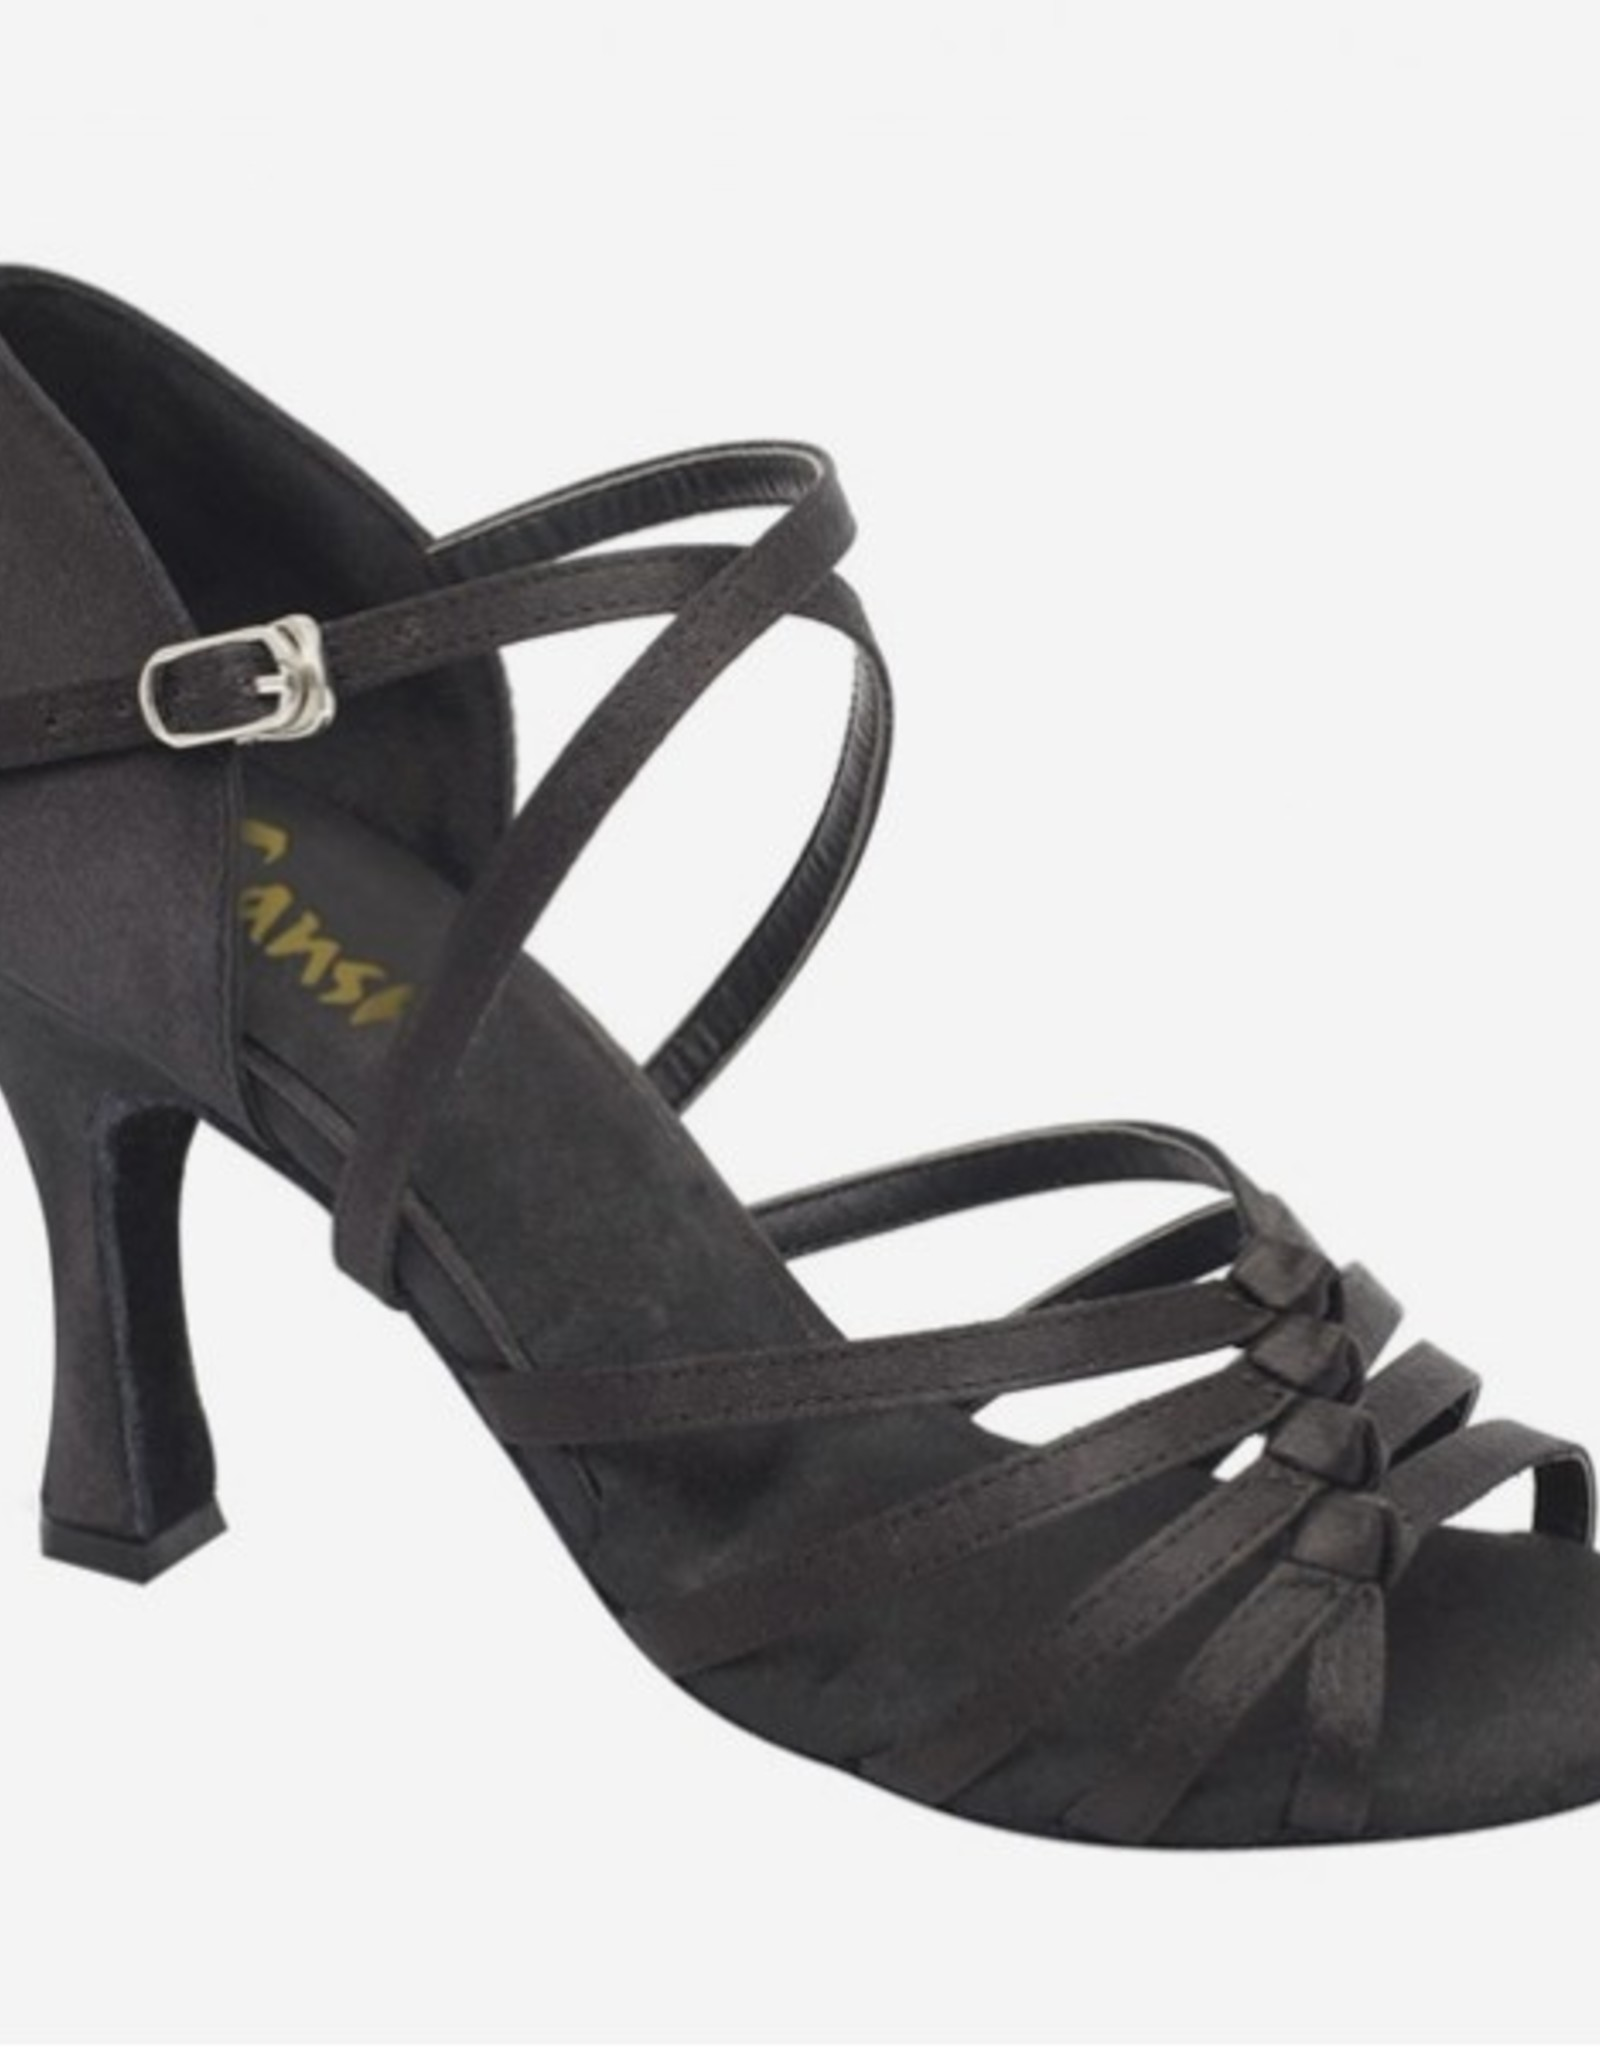 SANSHA  LENA LATIN DANCE SHOES (BR47)